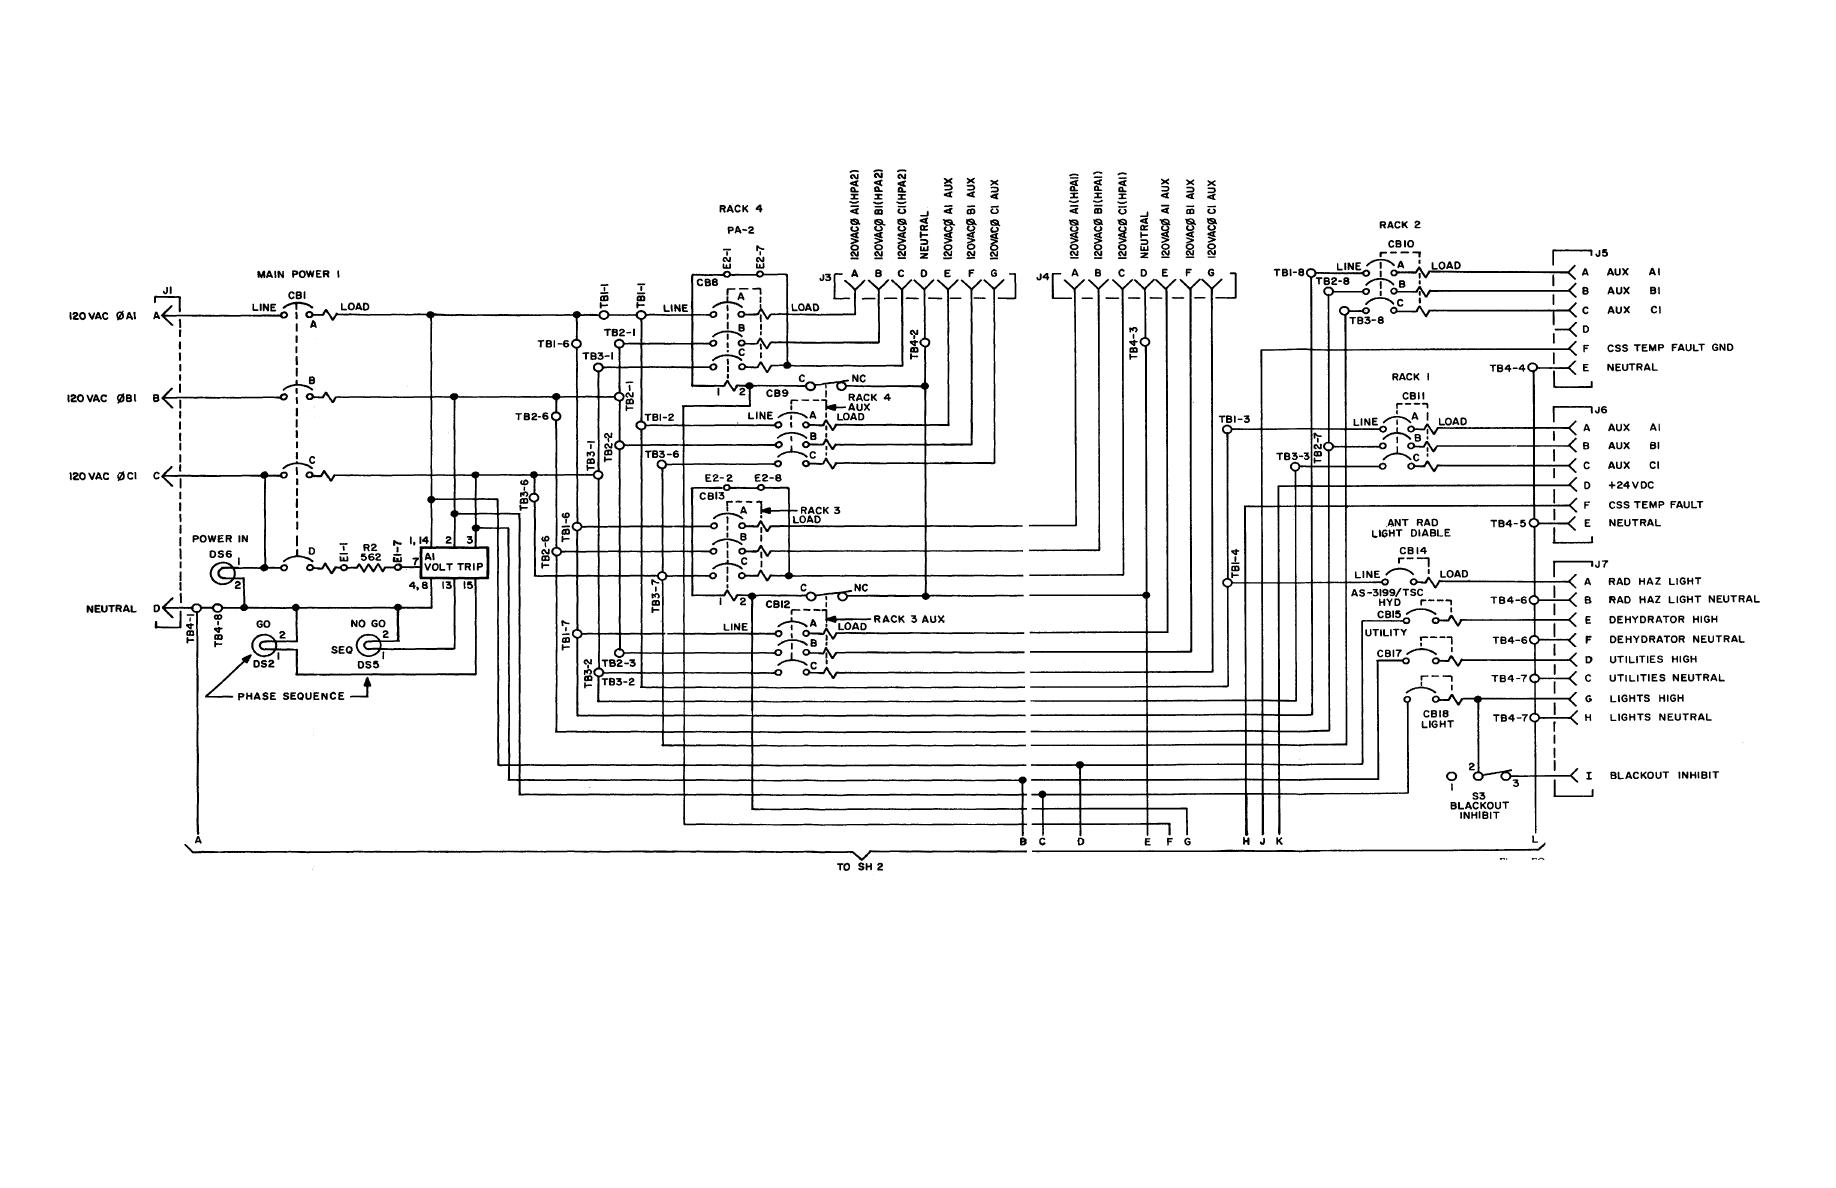 Peachy Power Distribution Wiring Diagrams General Wiring Diagram Data Wiring Digital Resources Remcakbiperorg